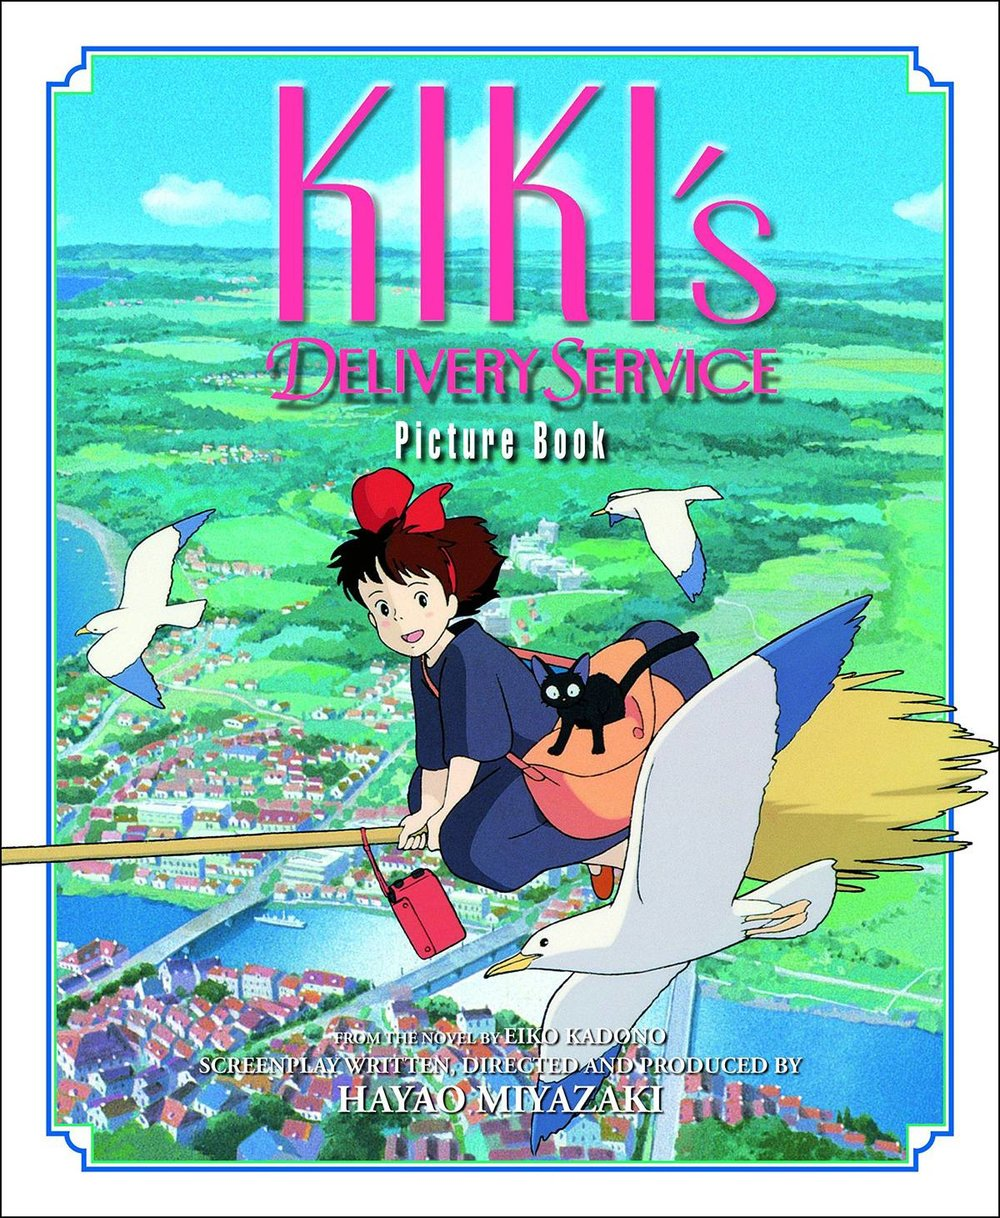 KIKIS DELIVERY SERVICE PICTURE BOOK HC GHIBLI (CURR PTG).jpg